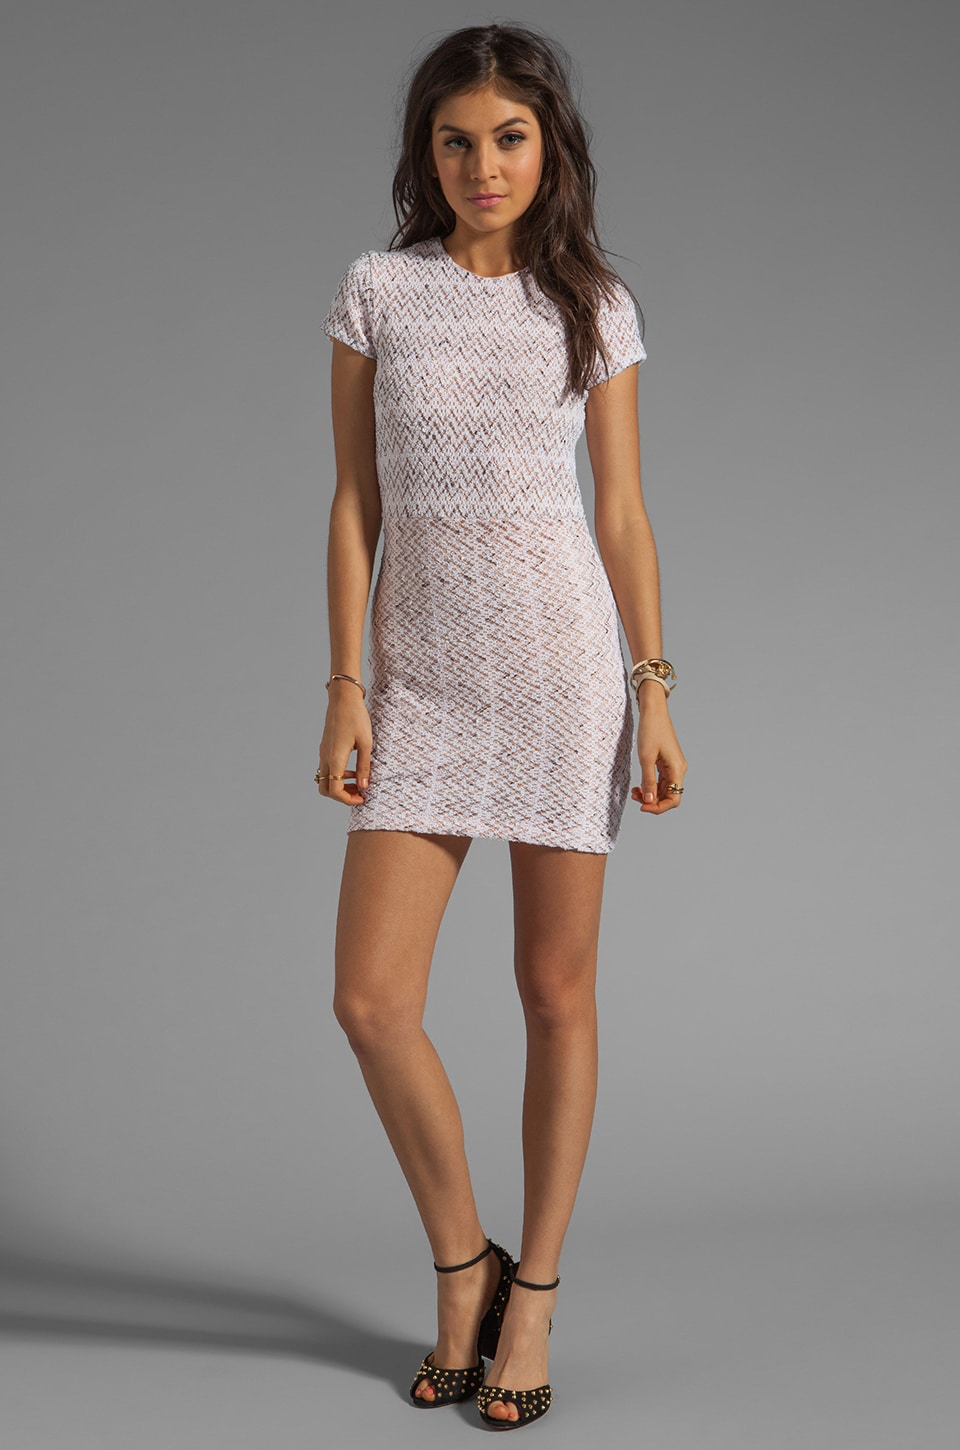 Dolce Vita Ren Zigzag Crochet Short Sleeve Dress in White